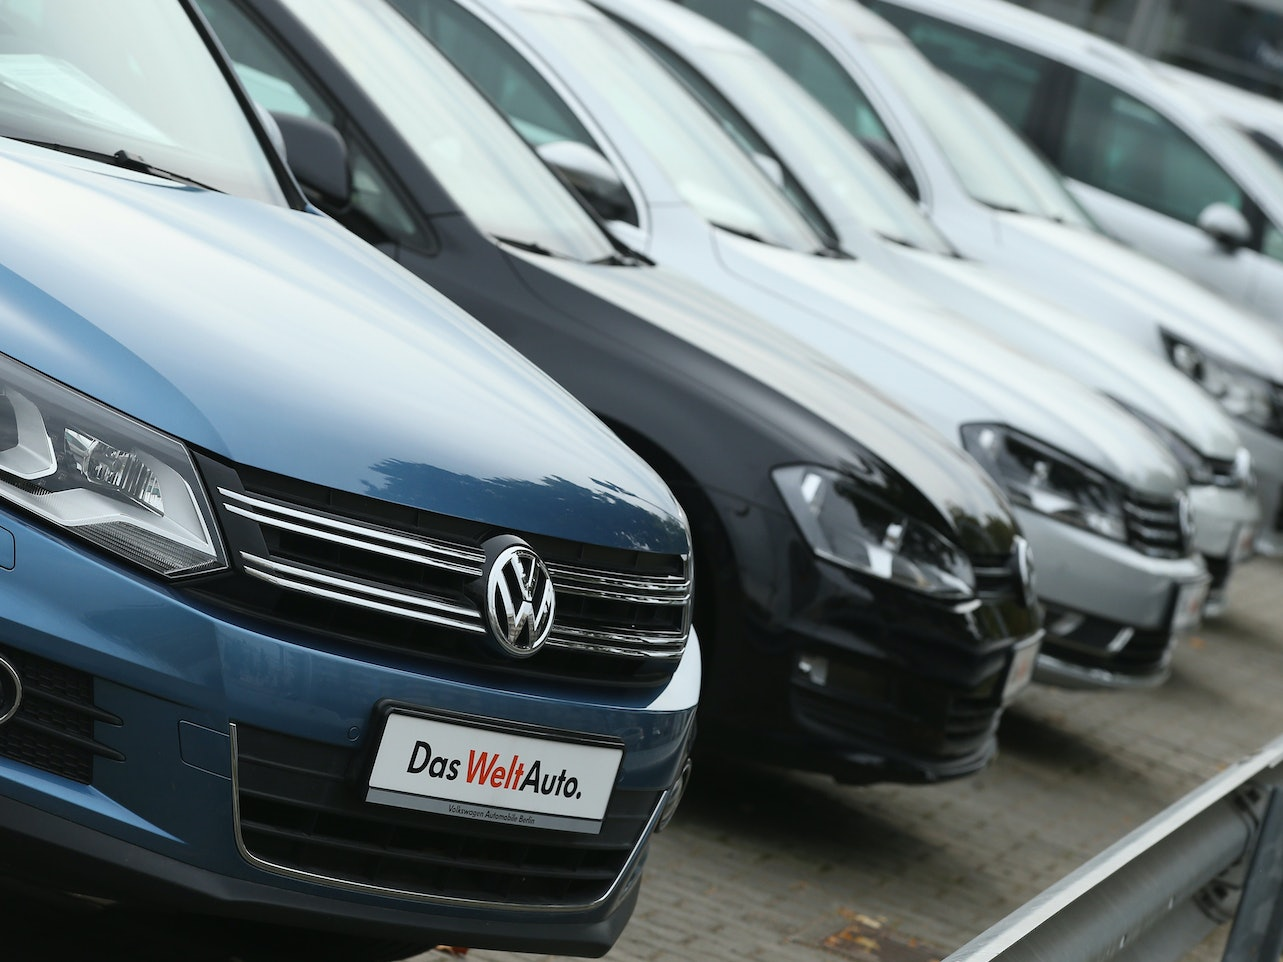 How Volkswagen Diesel Engines Cheated the EPA for Years